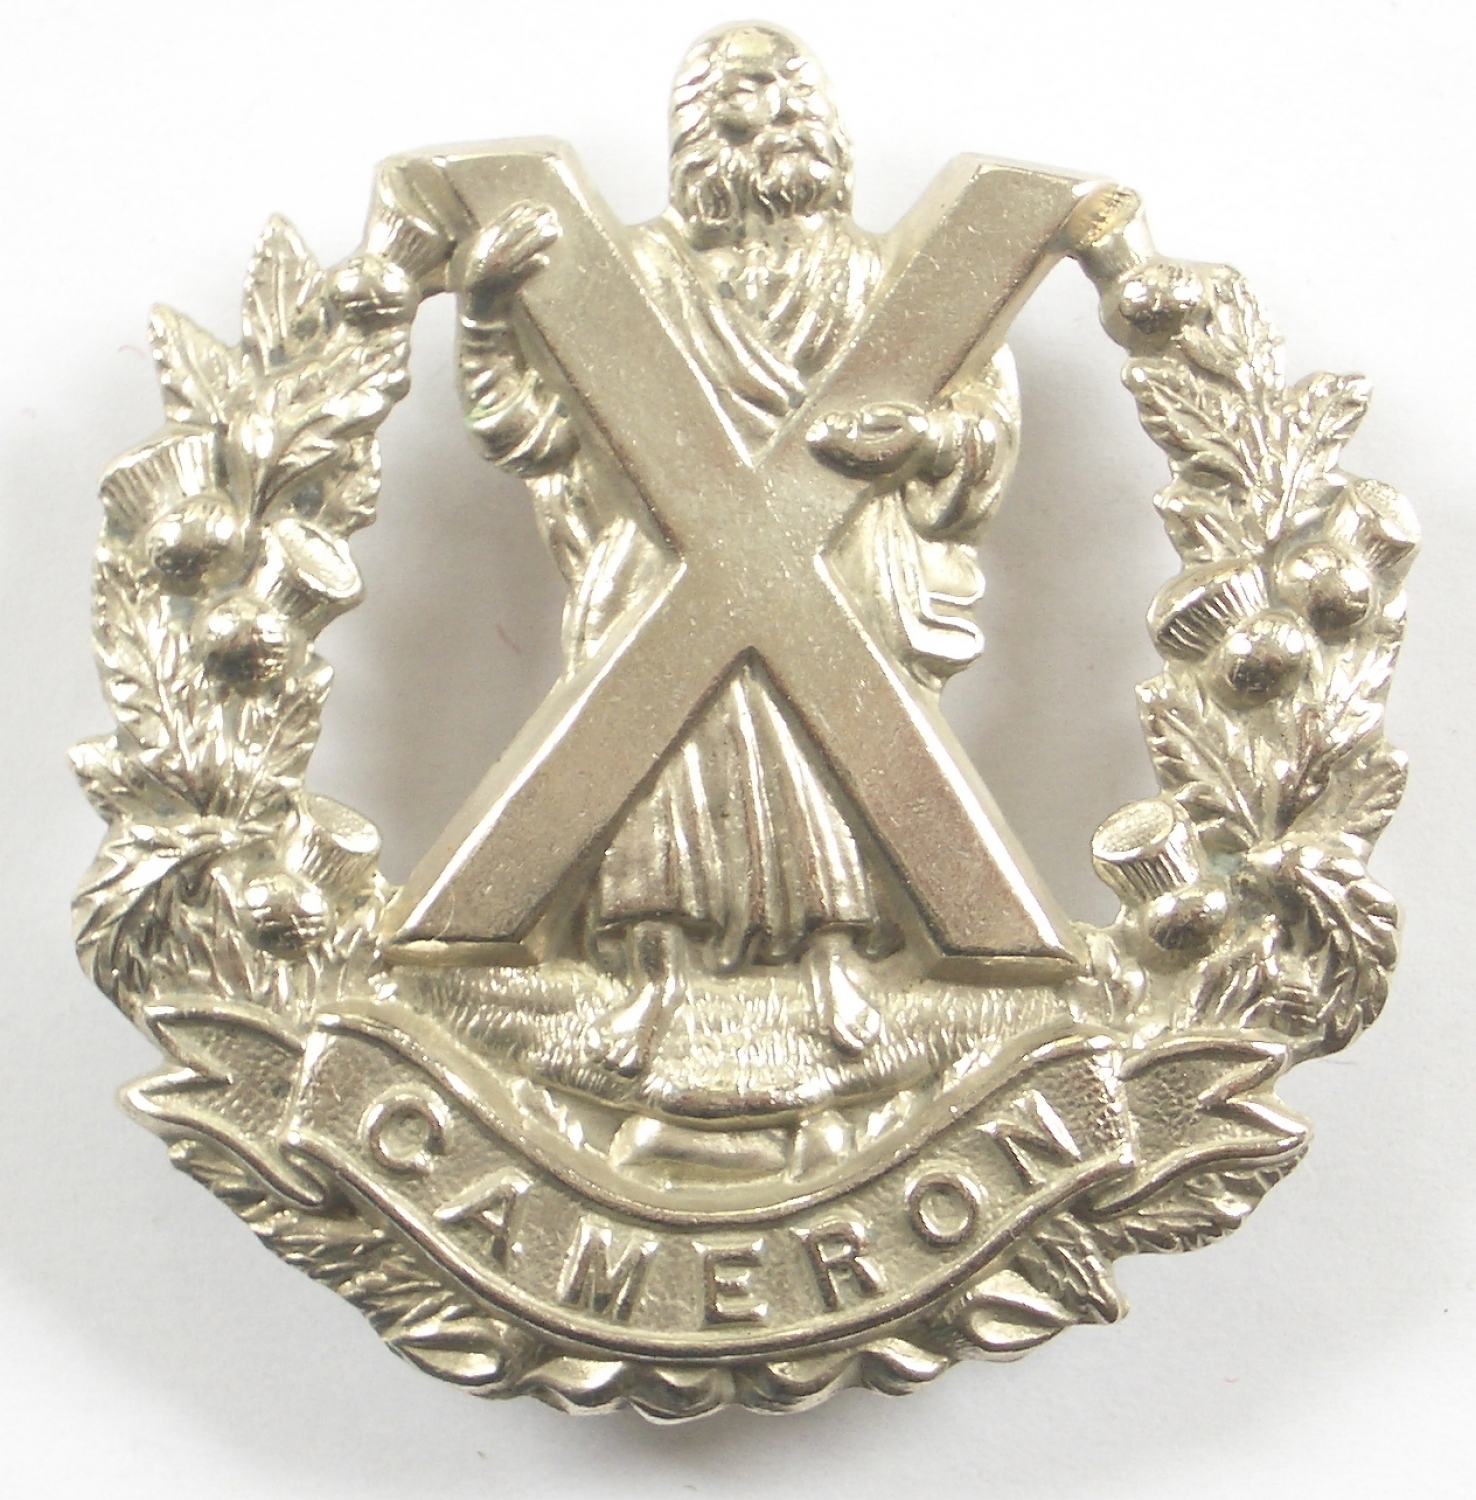 Cameron Highlanders of Canada glengarry badge